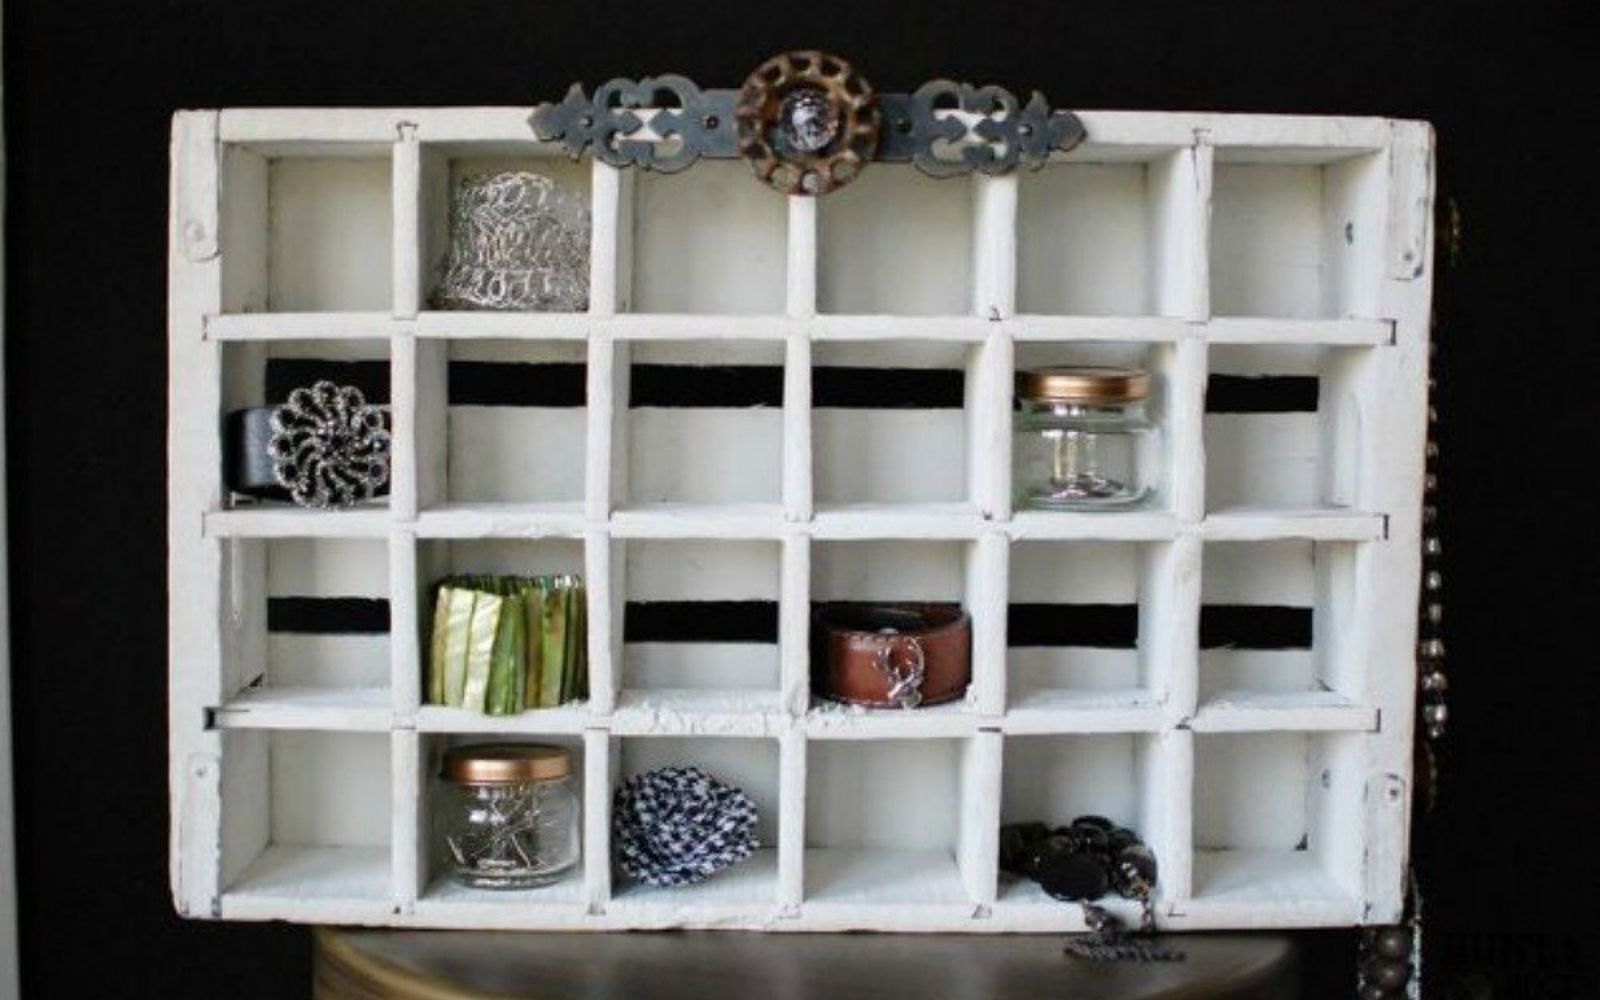 s 21 jewelry organizing ideas that are better than a jewelry box, organizing, This reclaimed and painted soda crate